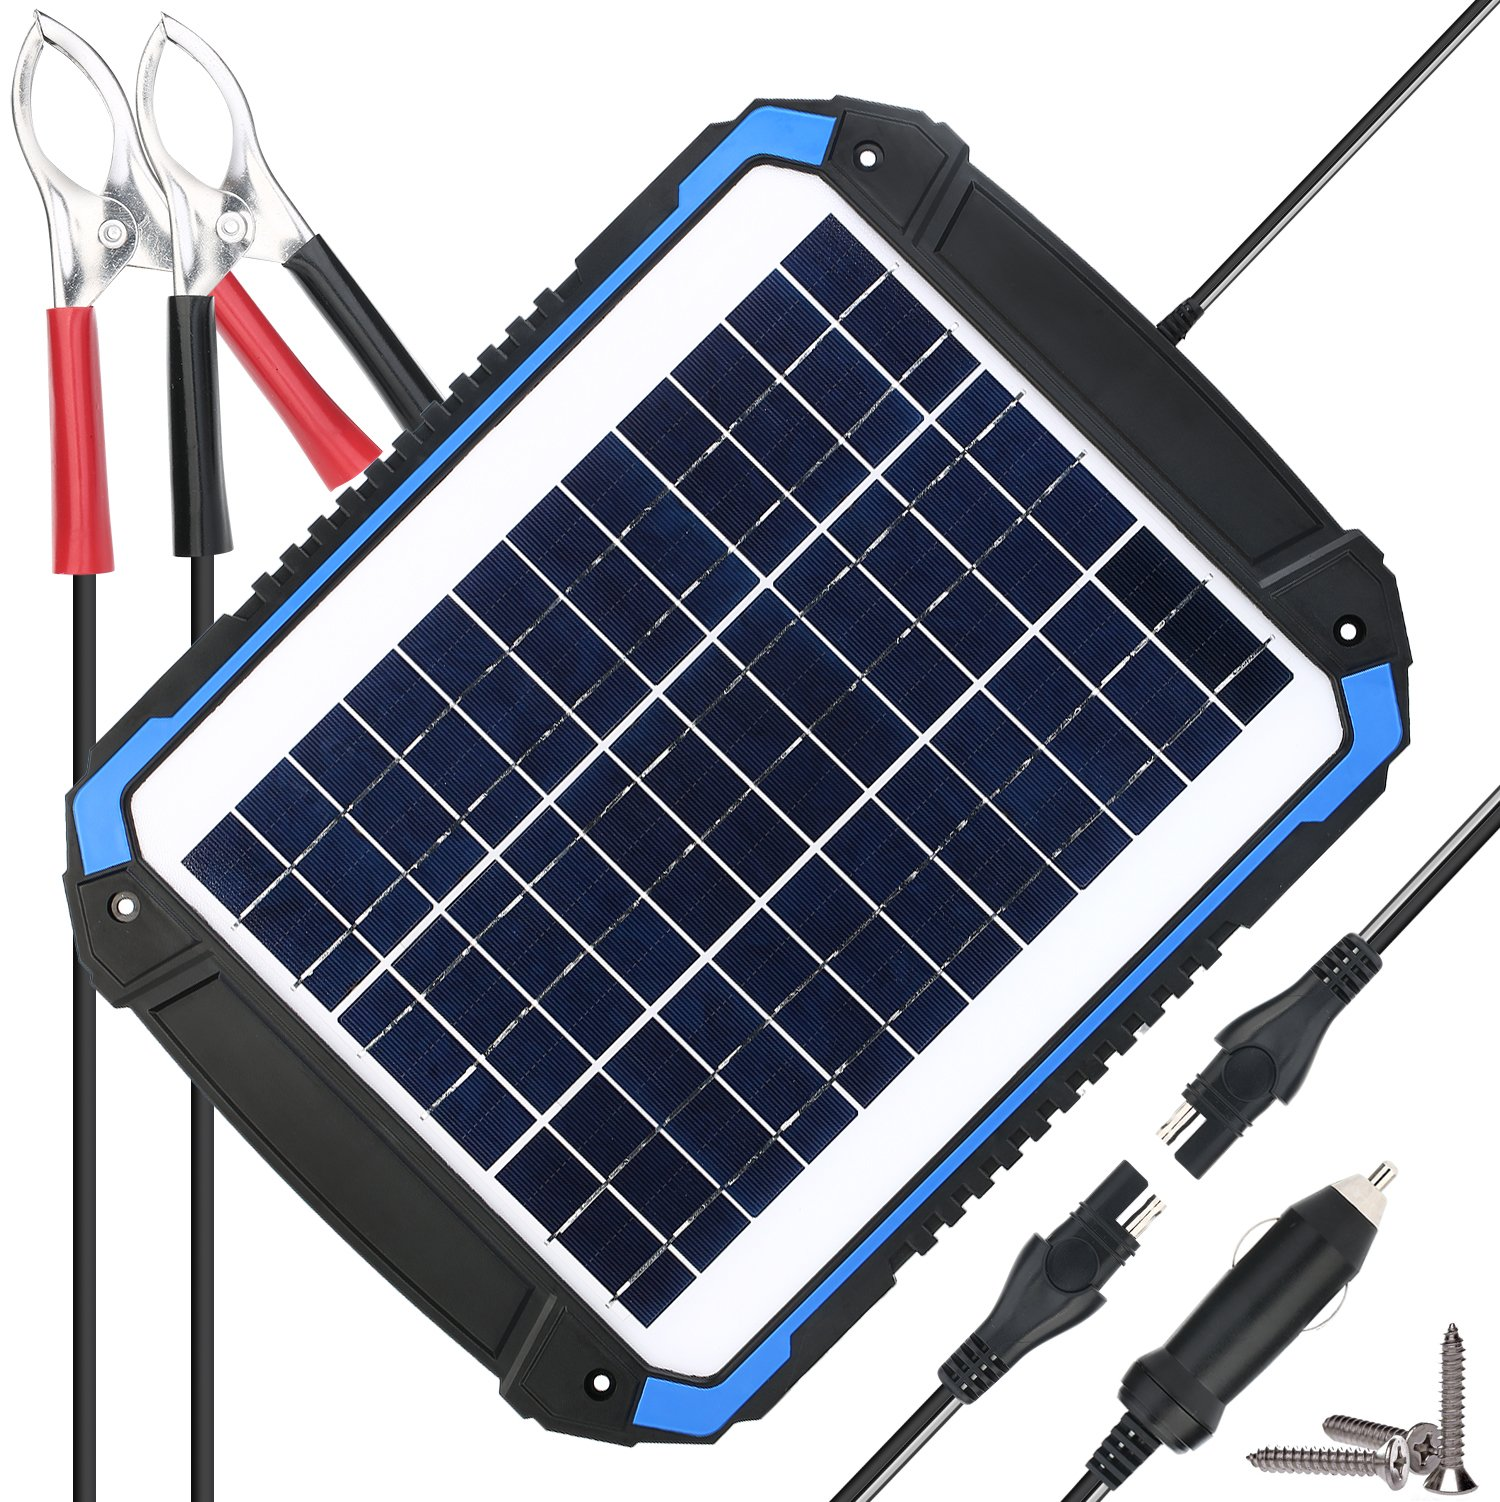 Best Rated In Solar Battery Chargers Charging Kits Helpful 12v Charger Circuit Moreover The Usb Car Suner Power Maintainer Portable 12w Panel Trickle